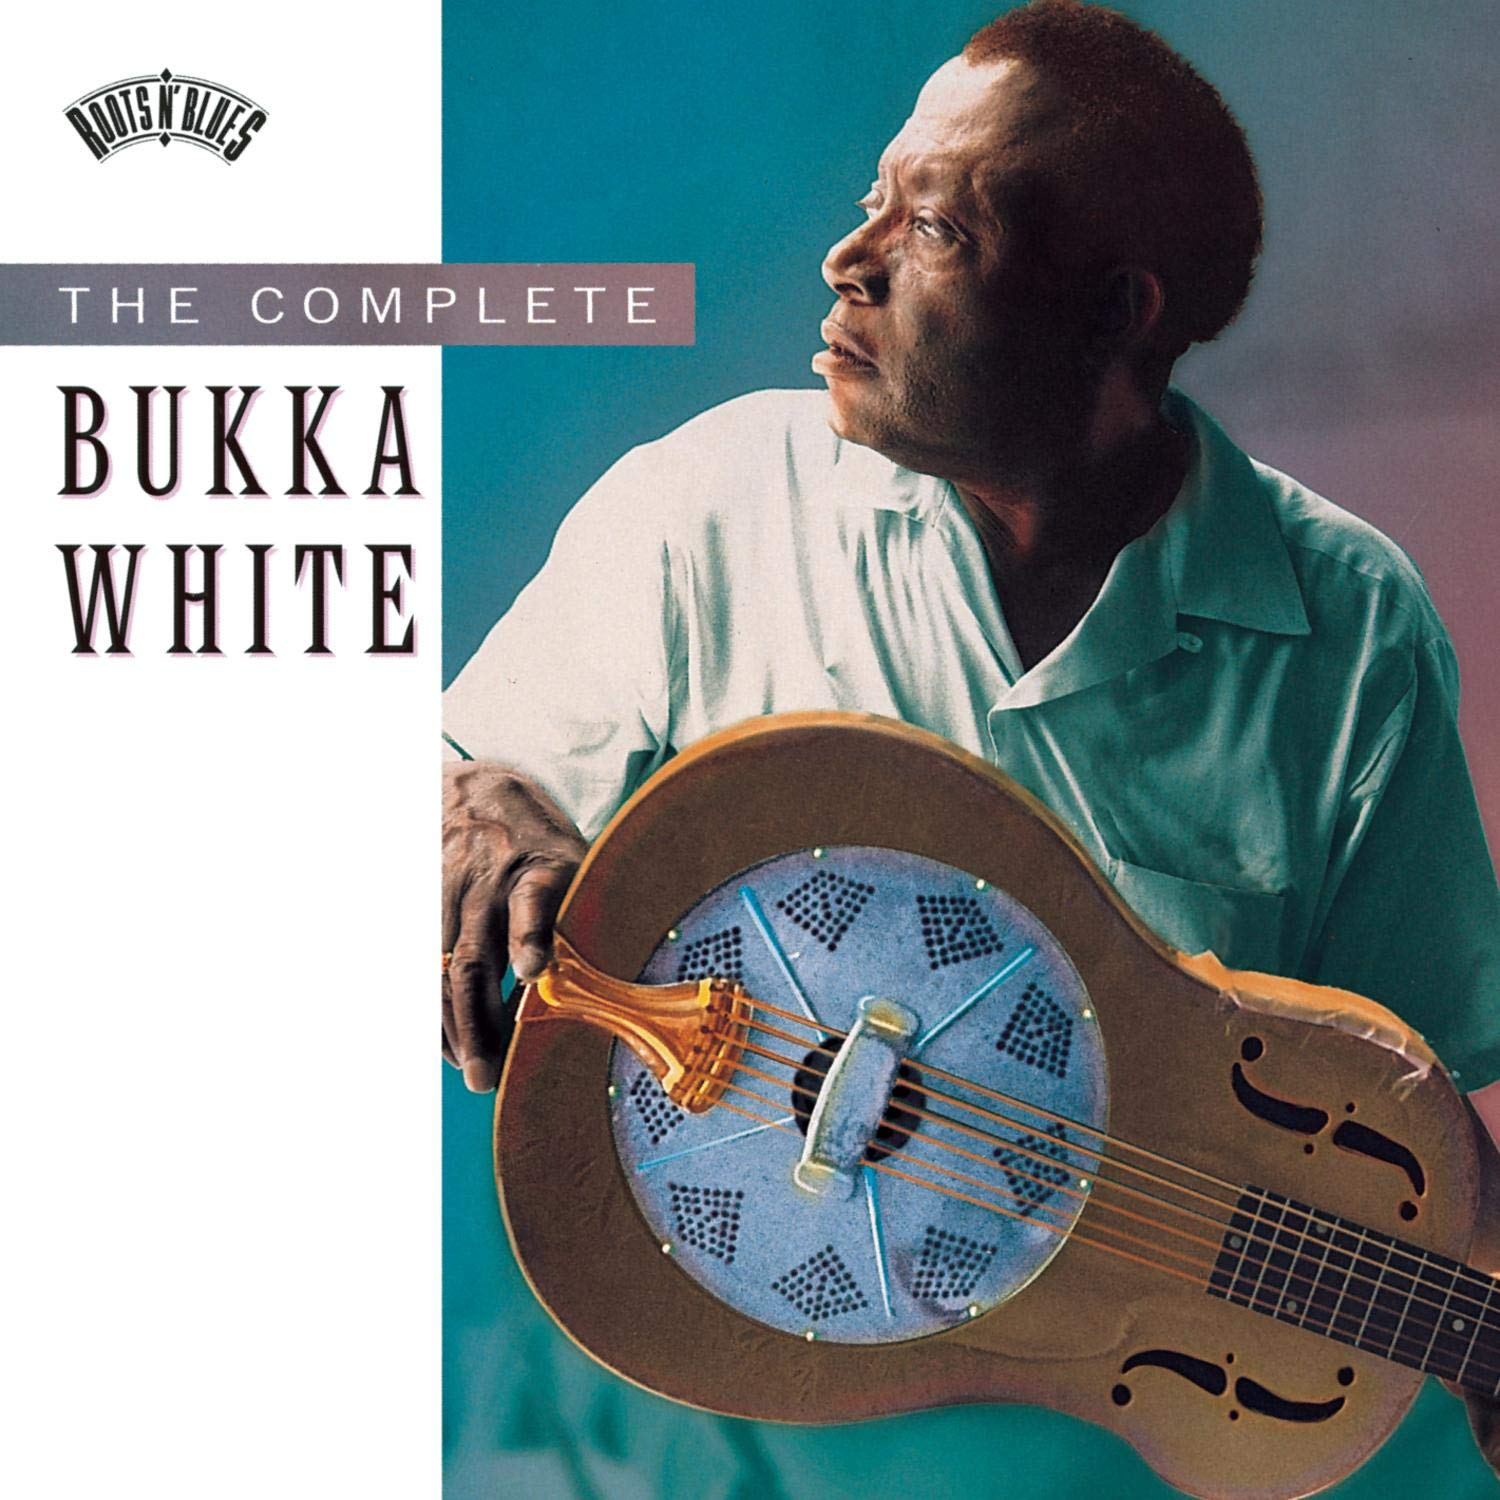 The Complete Bukka White by Legacy